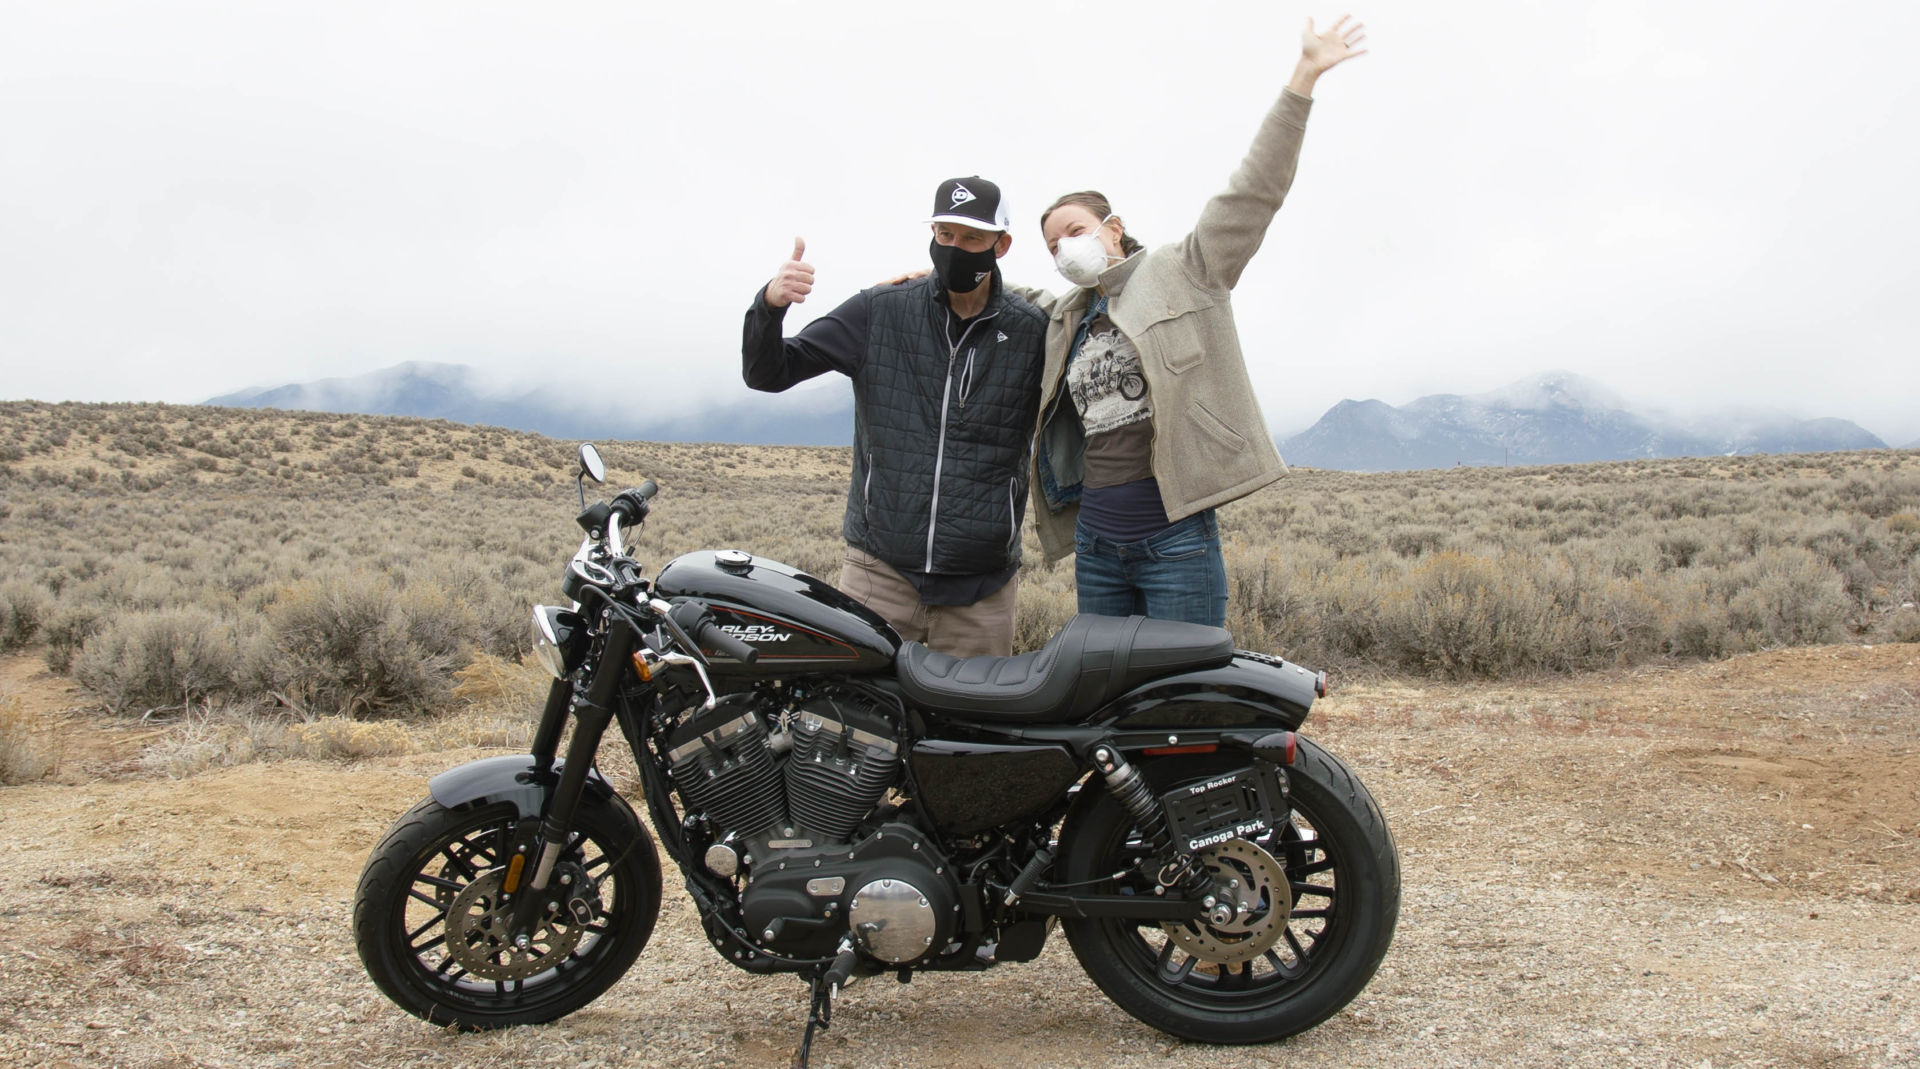 Mike Buckley, Senior VP, Sales and Marketing, Dunlop Motorcycle Tires (left) with Physician Assistant Darwin Longfellow (right) and her new 2020 Harley-Davidson XL1200 Sportster Roadster. Photo courtesy Dunlop.